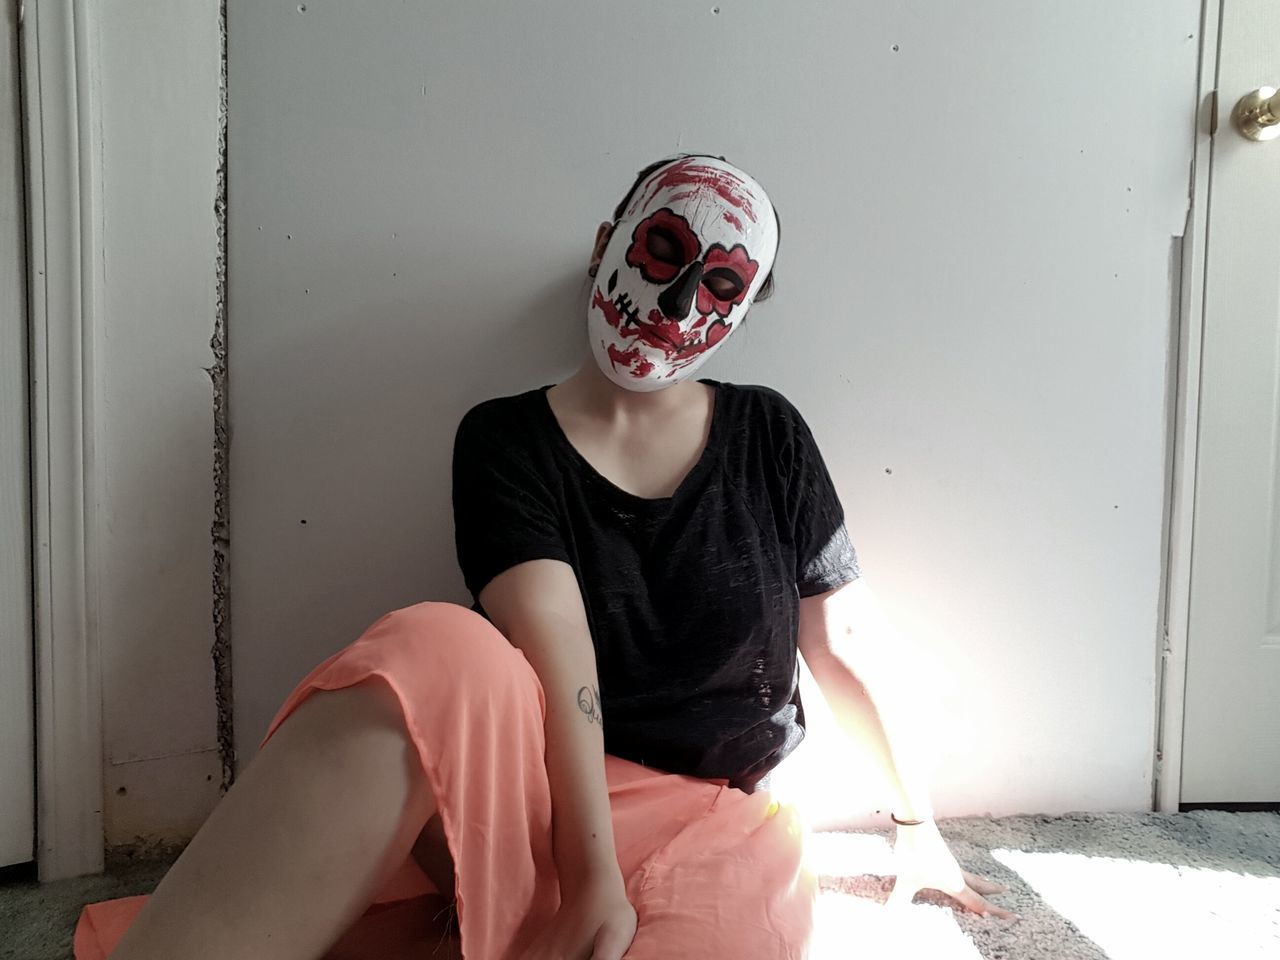 There's a twisted soul underneath this mask Mask - Disguise Person This Is Me Twistedsoul